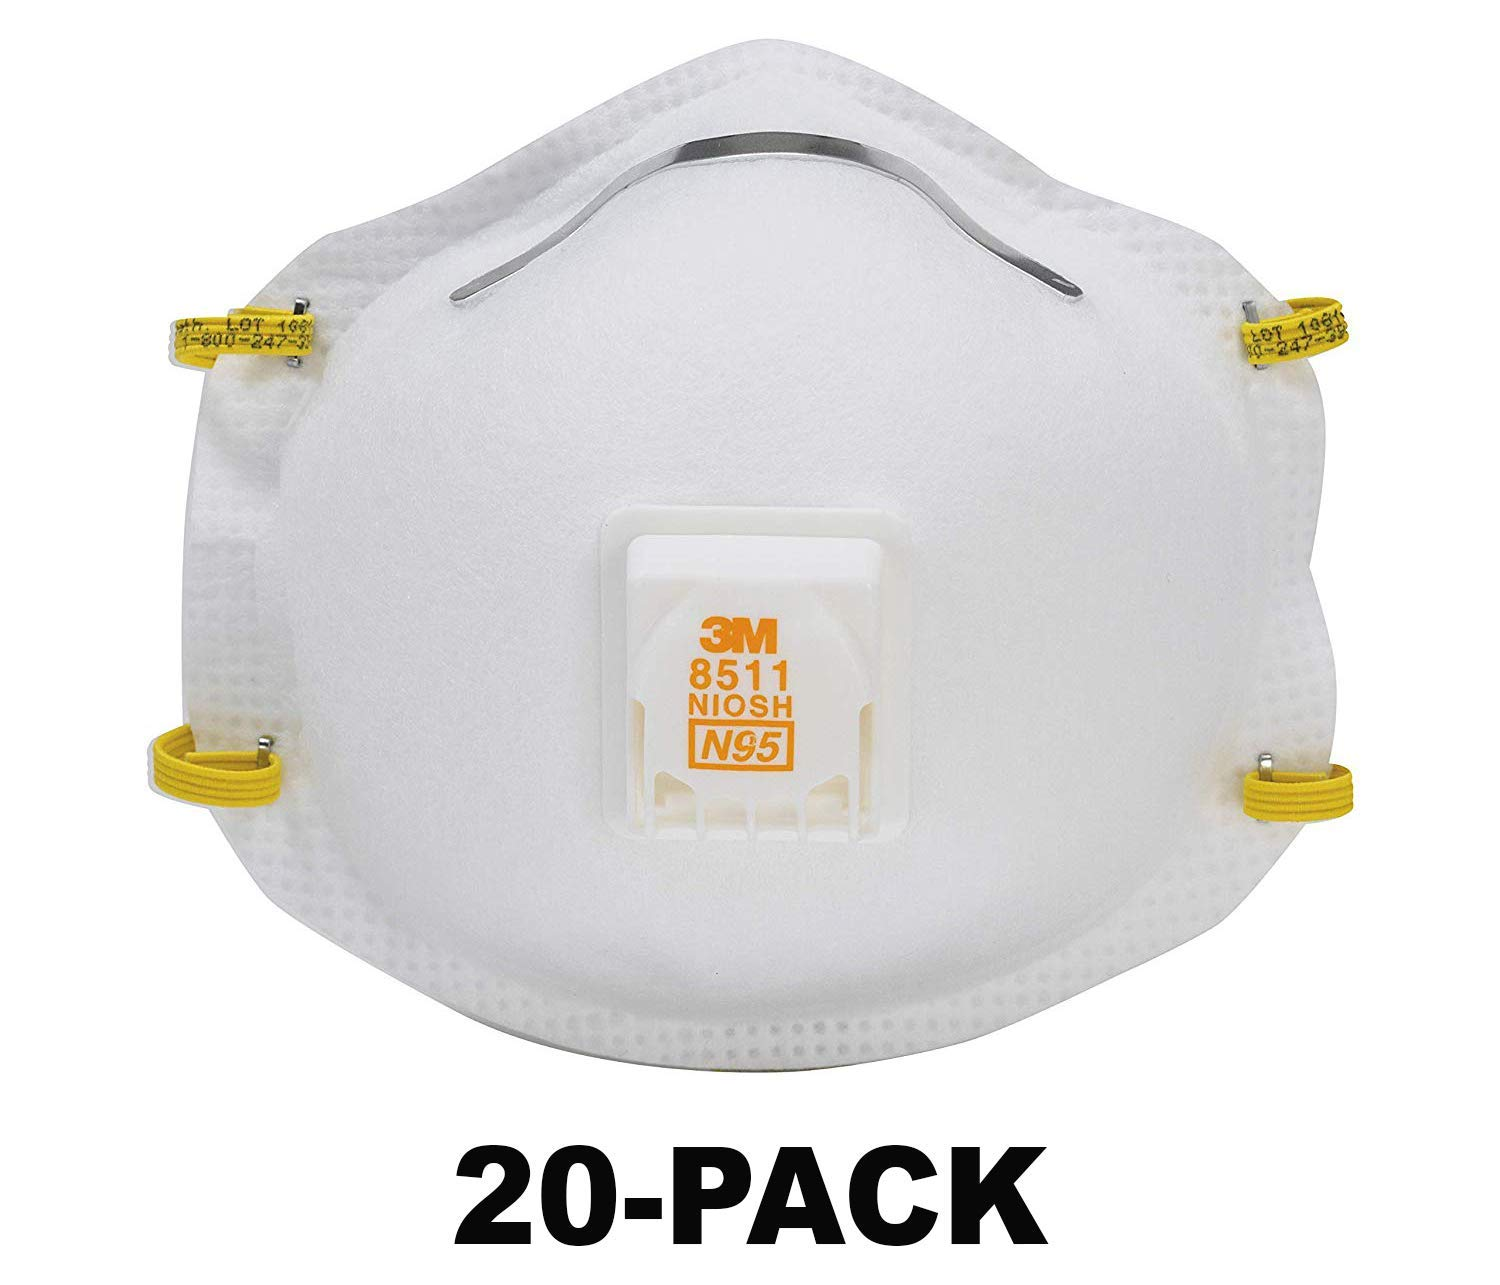 3M 8511 Respirator, N95, Cool Flow Valve (20-PACK) by 3M SAFETY